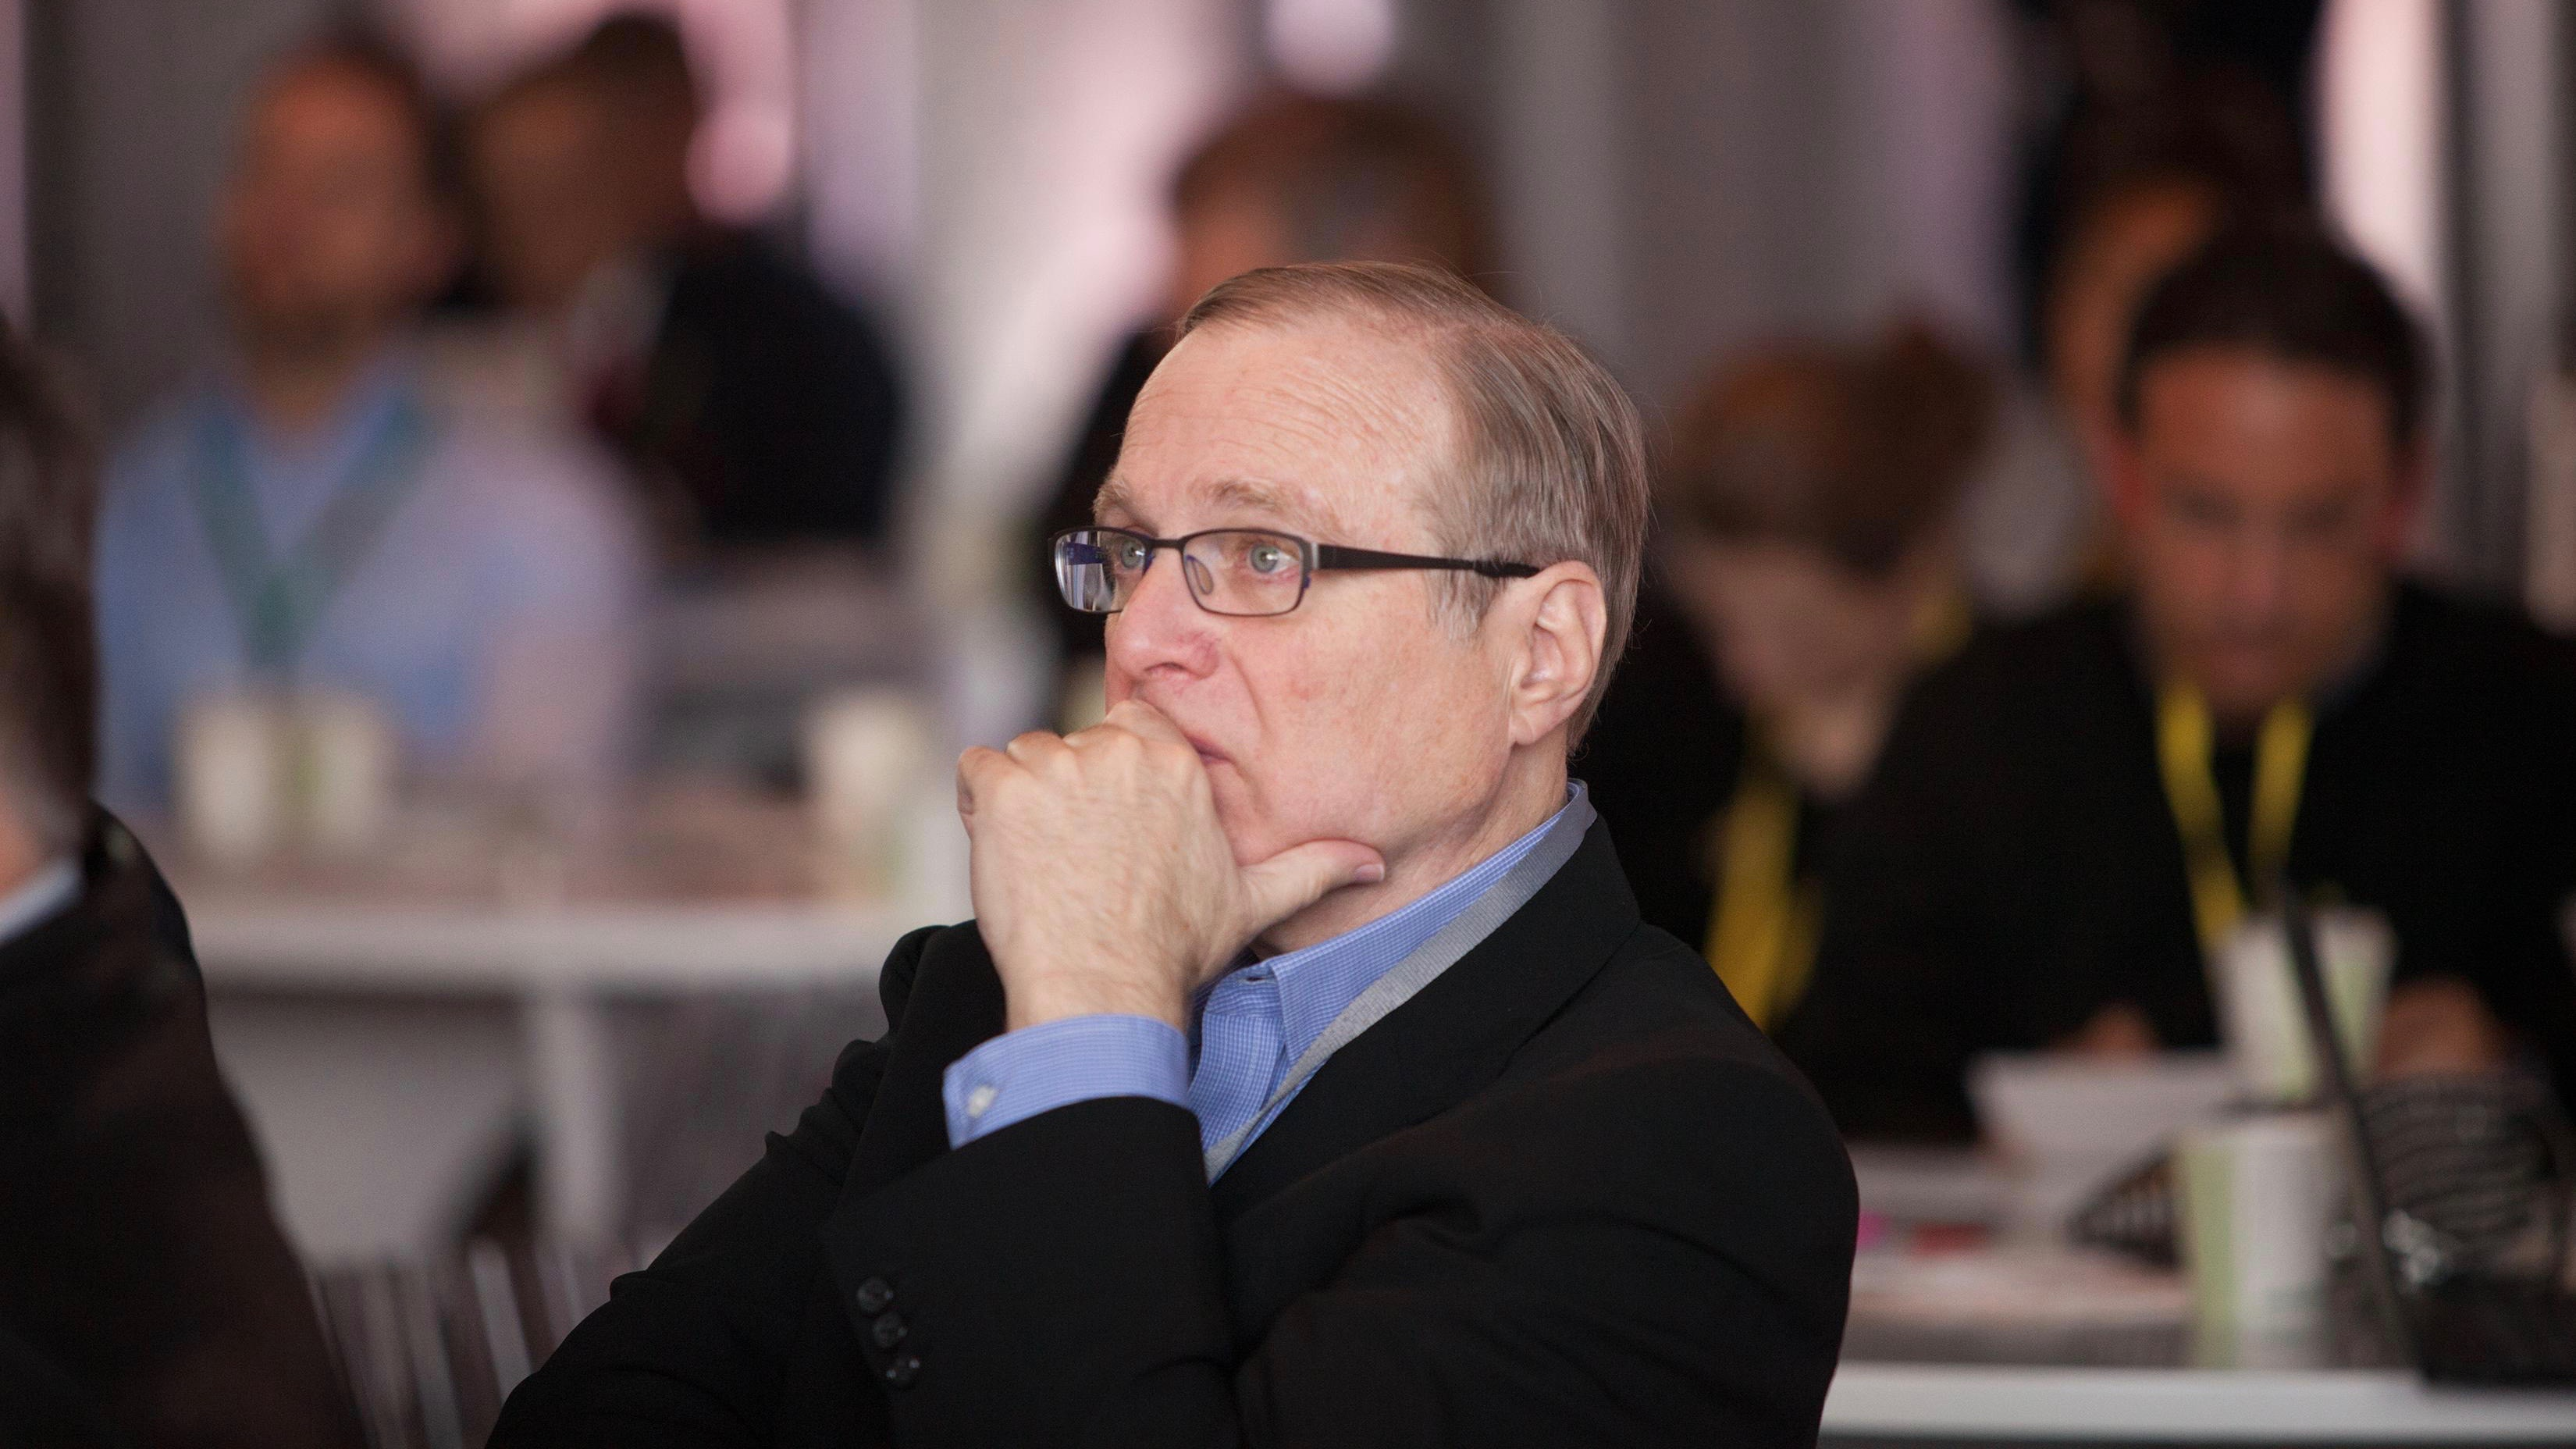 microsoft co founder paul allen passes away at 65 remembered by tim cook many more